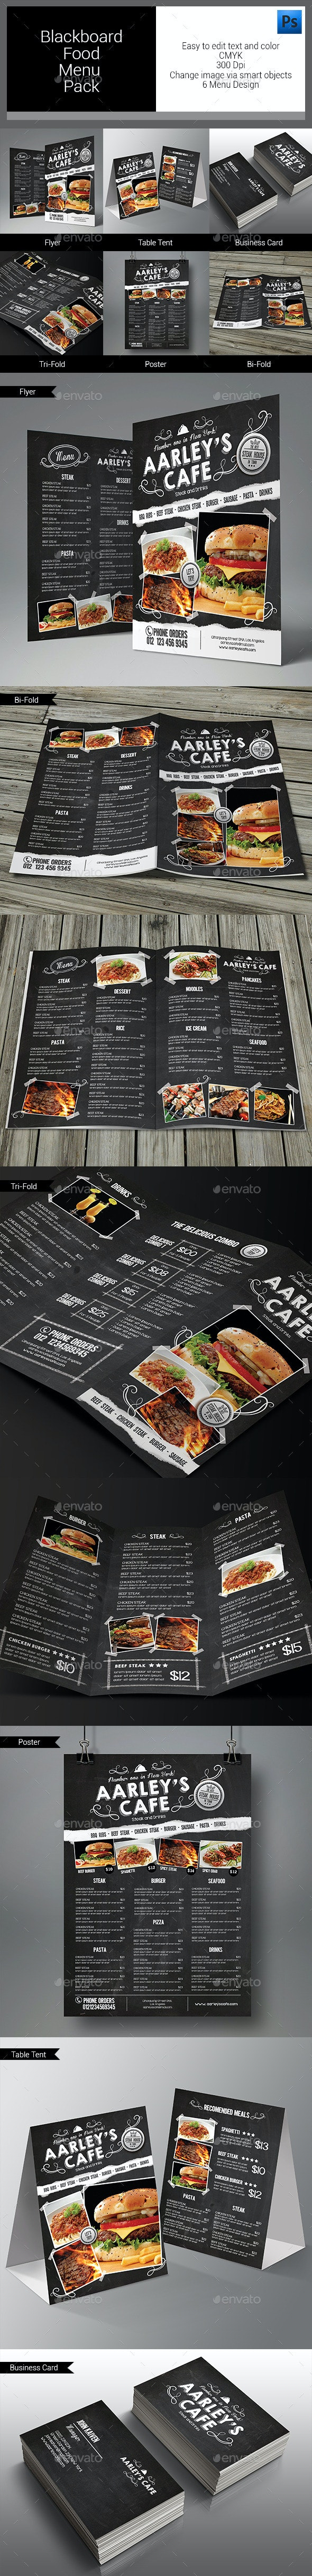 Blackboard Food Menu Bundle - Food Menus Print Templates